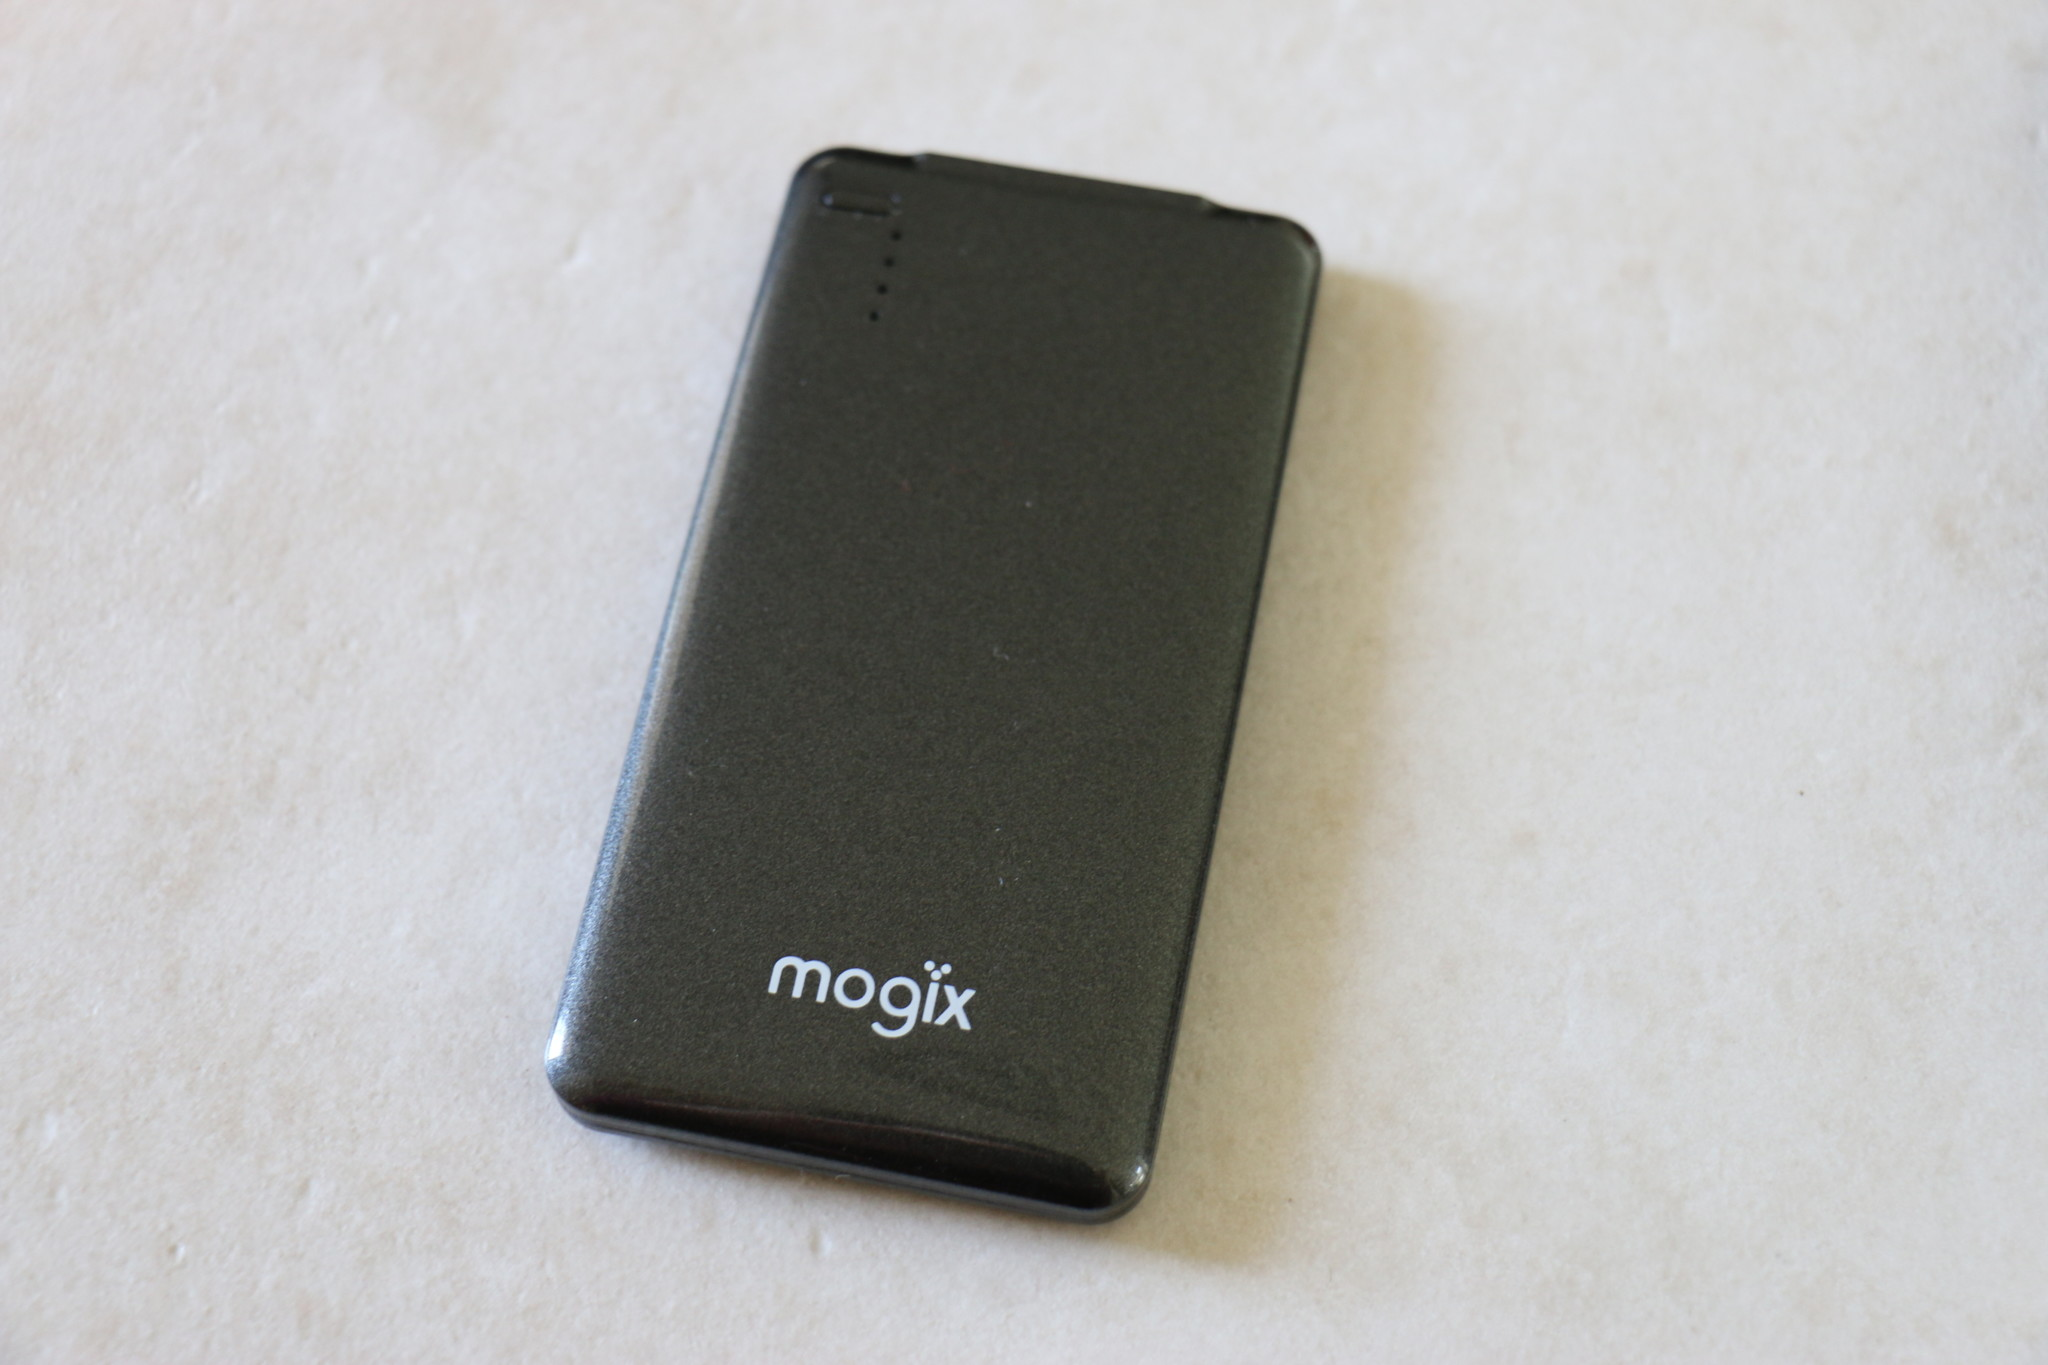 Mogix Portable Charger - front view